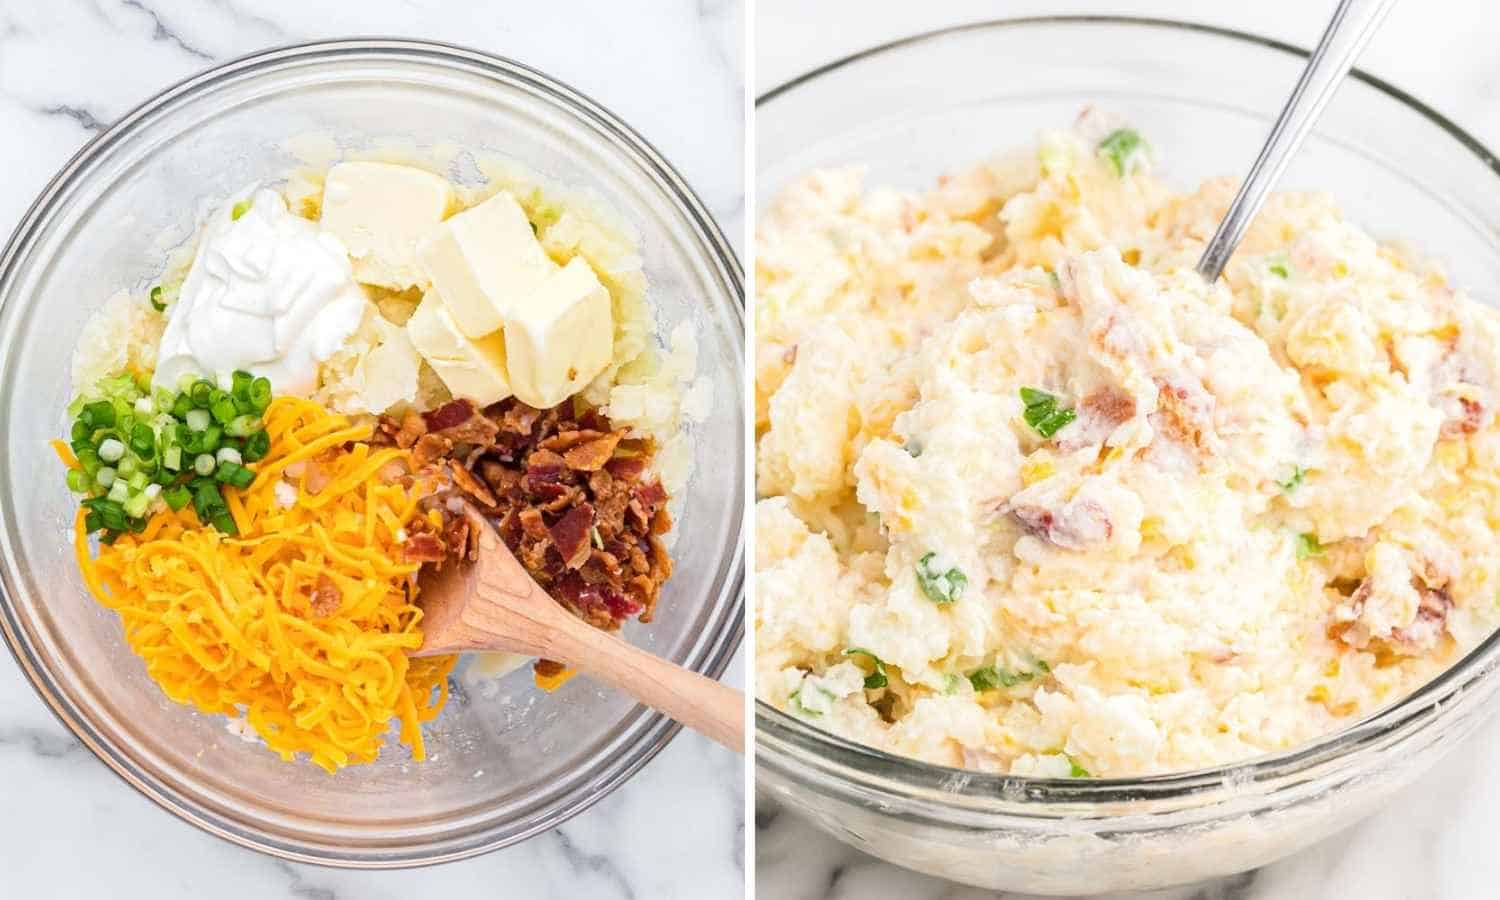 Collage with two images showing how to make the potato filling with cheese, bacon, sour cream and green onion.